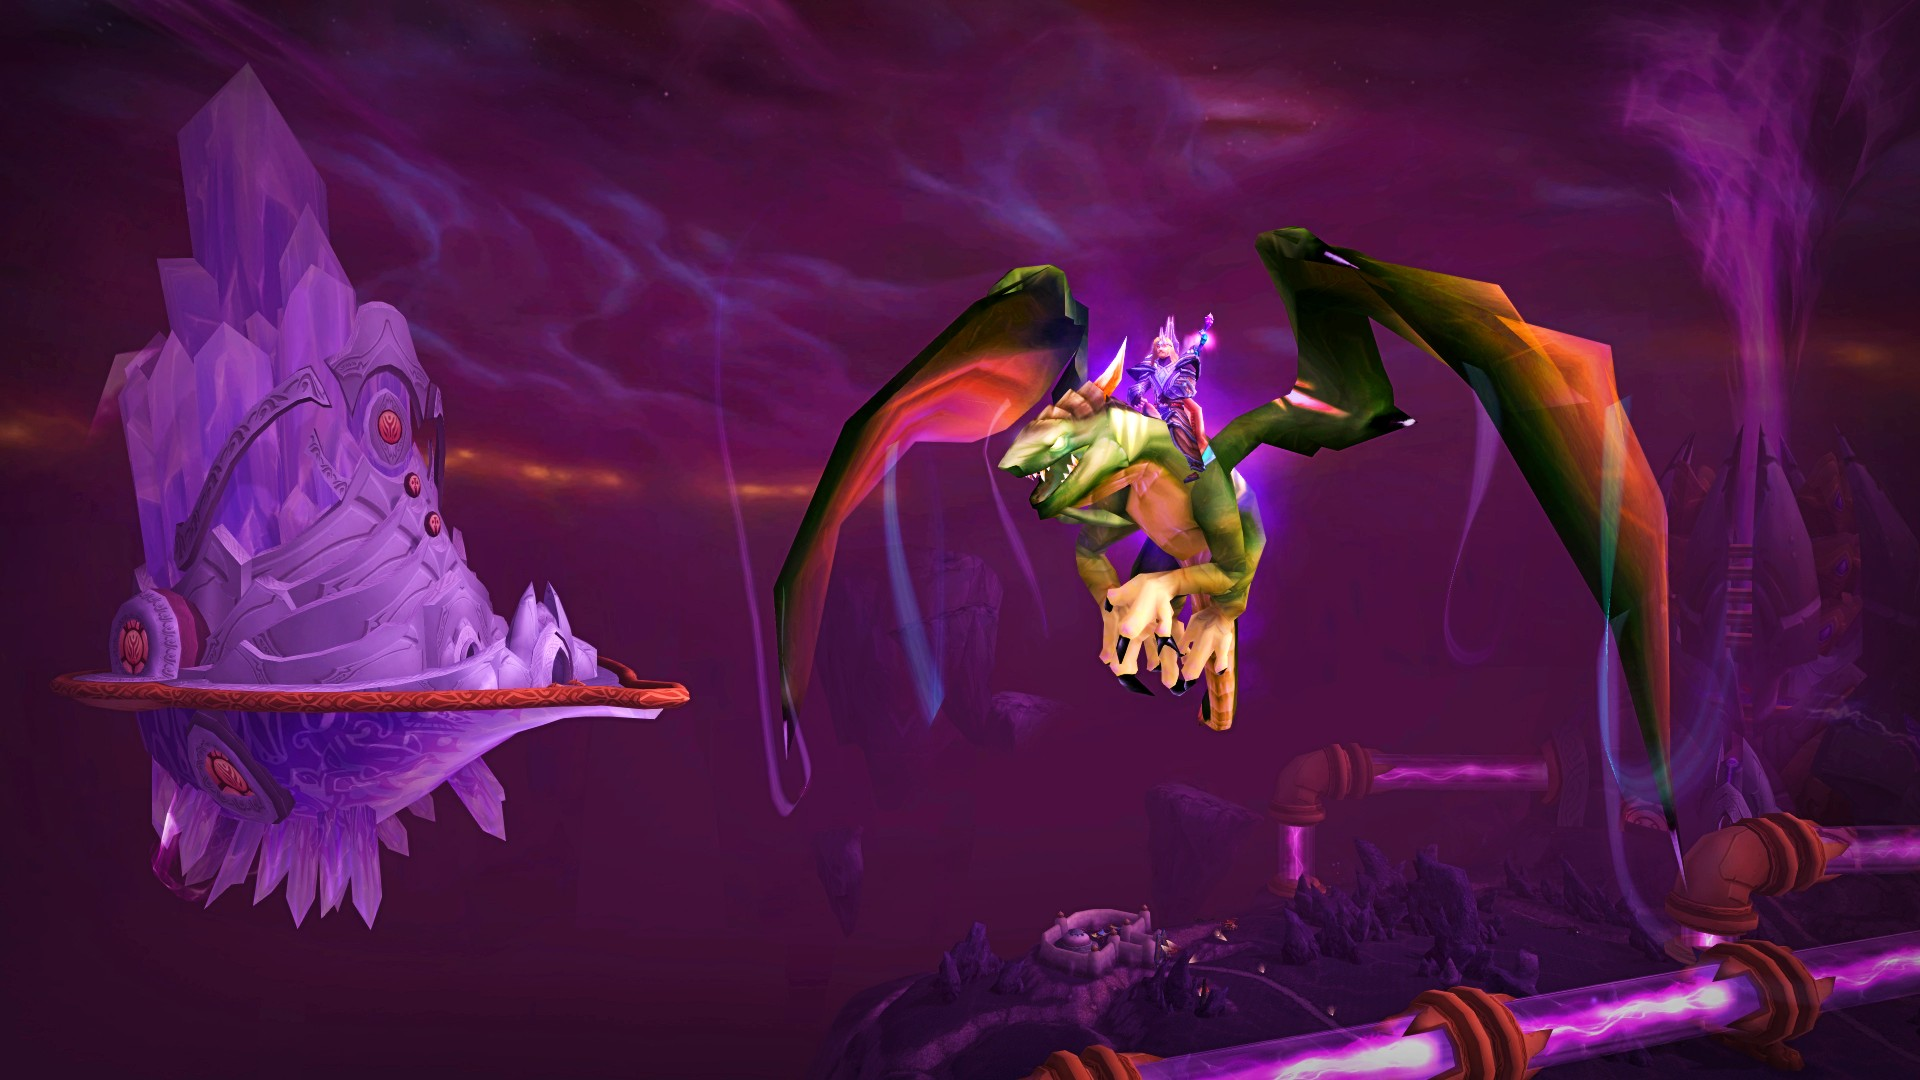 No, WoW Classic's Burning Crusade beta isn't available for download yet